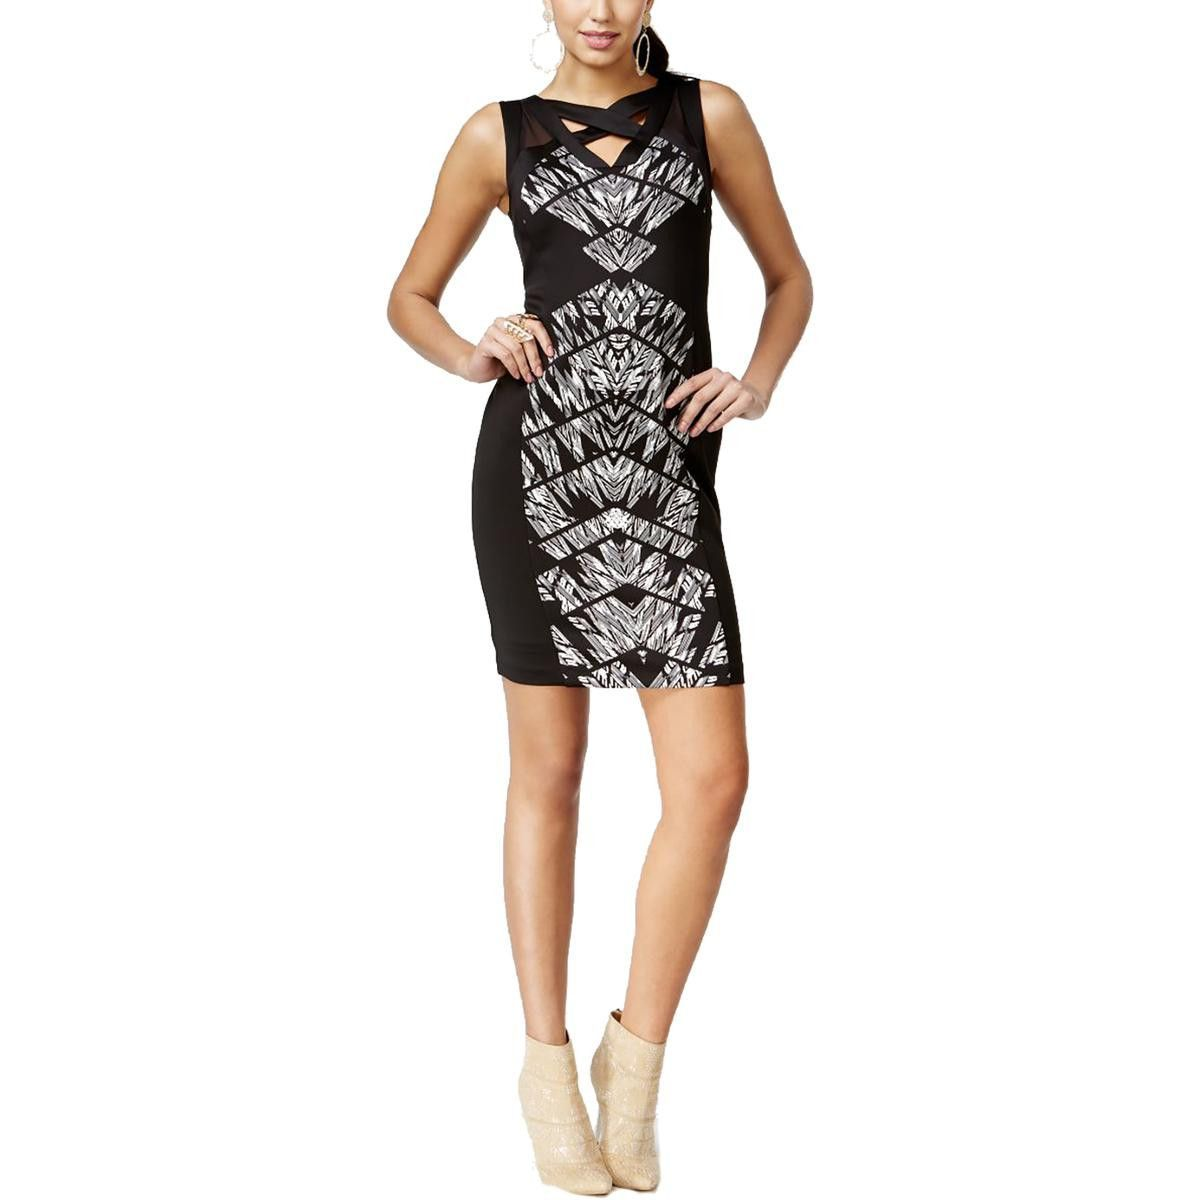 Wedding dresses at macy's  Thalia Sodi Womens Printed CutOut Cocktail Dress  Products